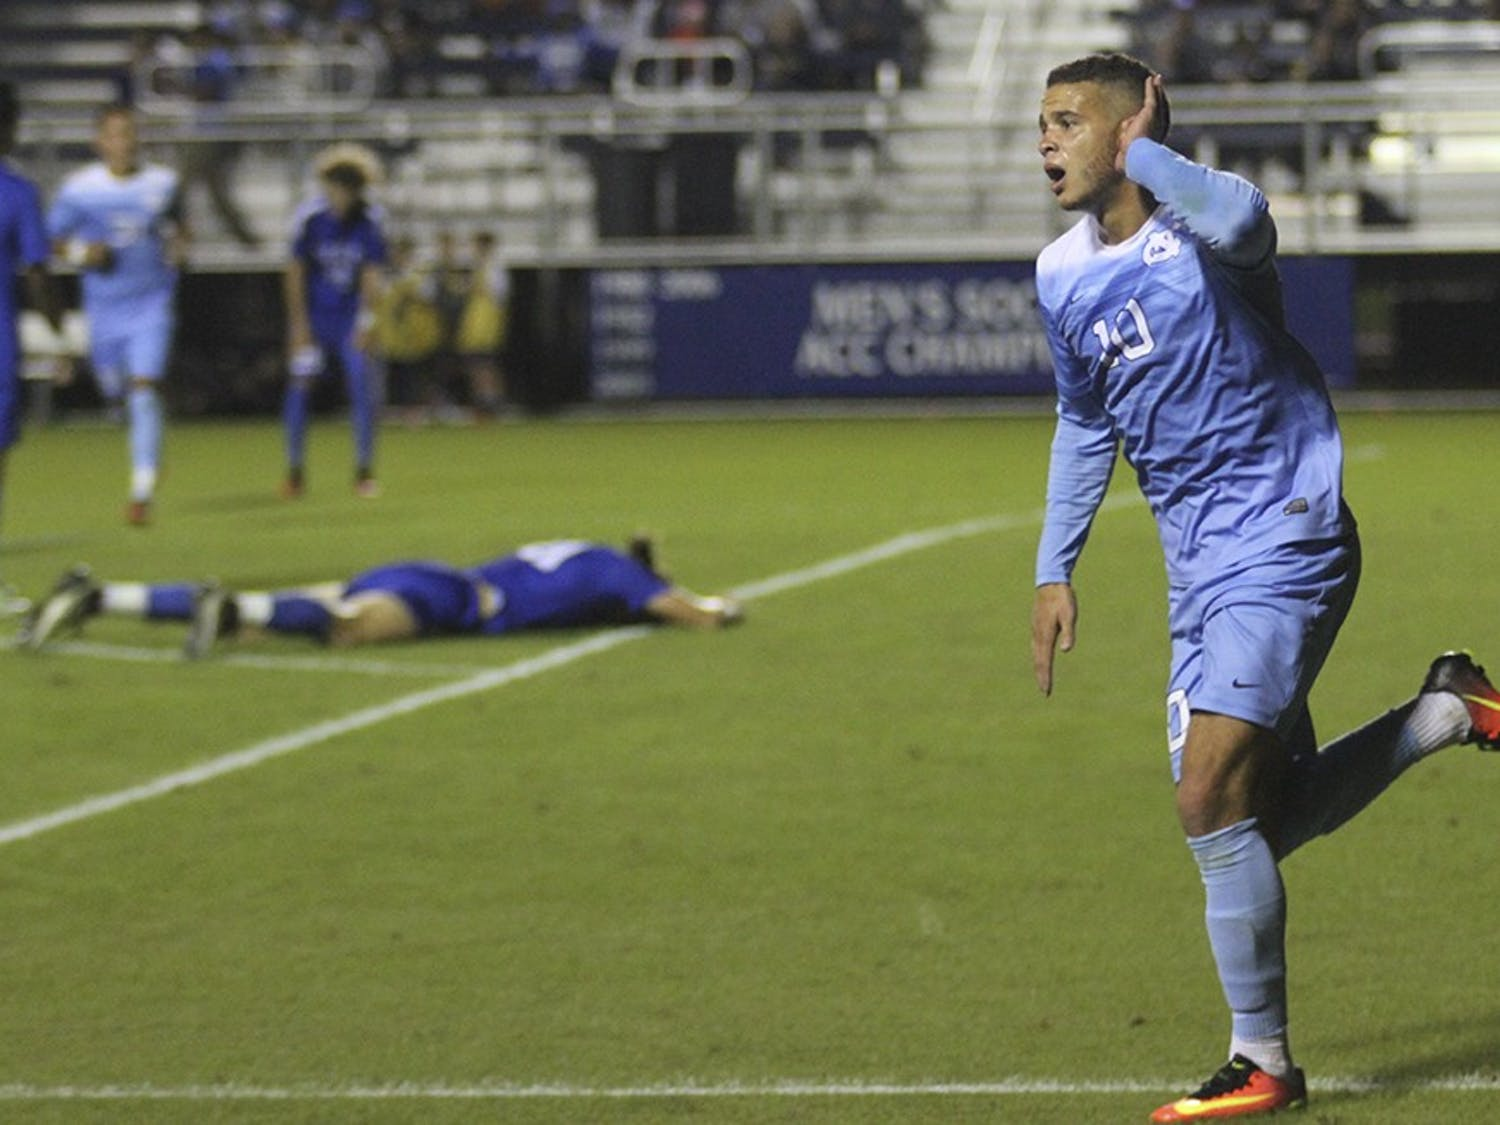 The UNC mens soccer team came back from a 1-0 deficit to defeat Duke with a final score of 2-1. Zach Wright and Nils Bruening scored both goals.